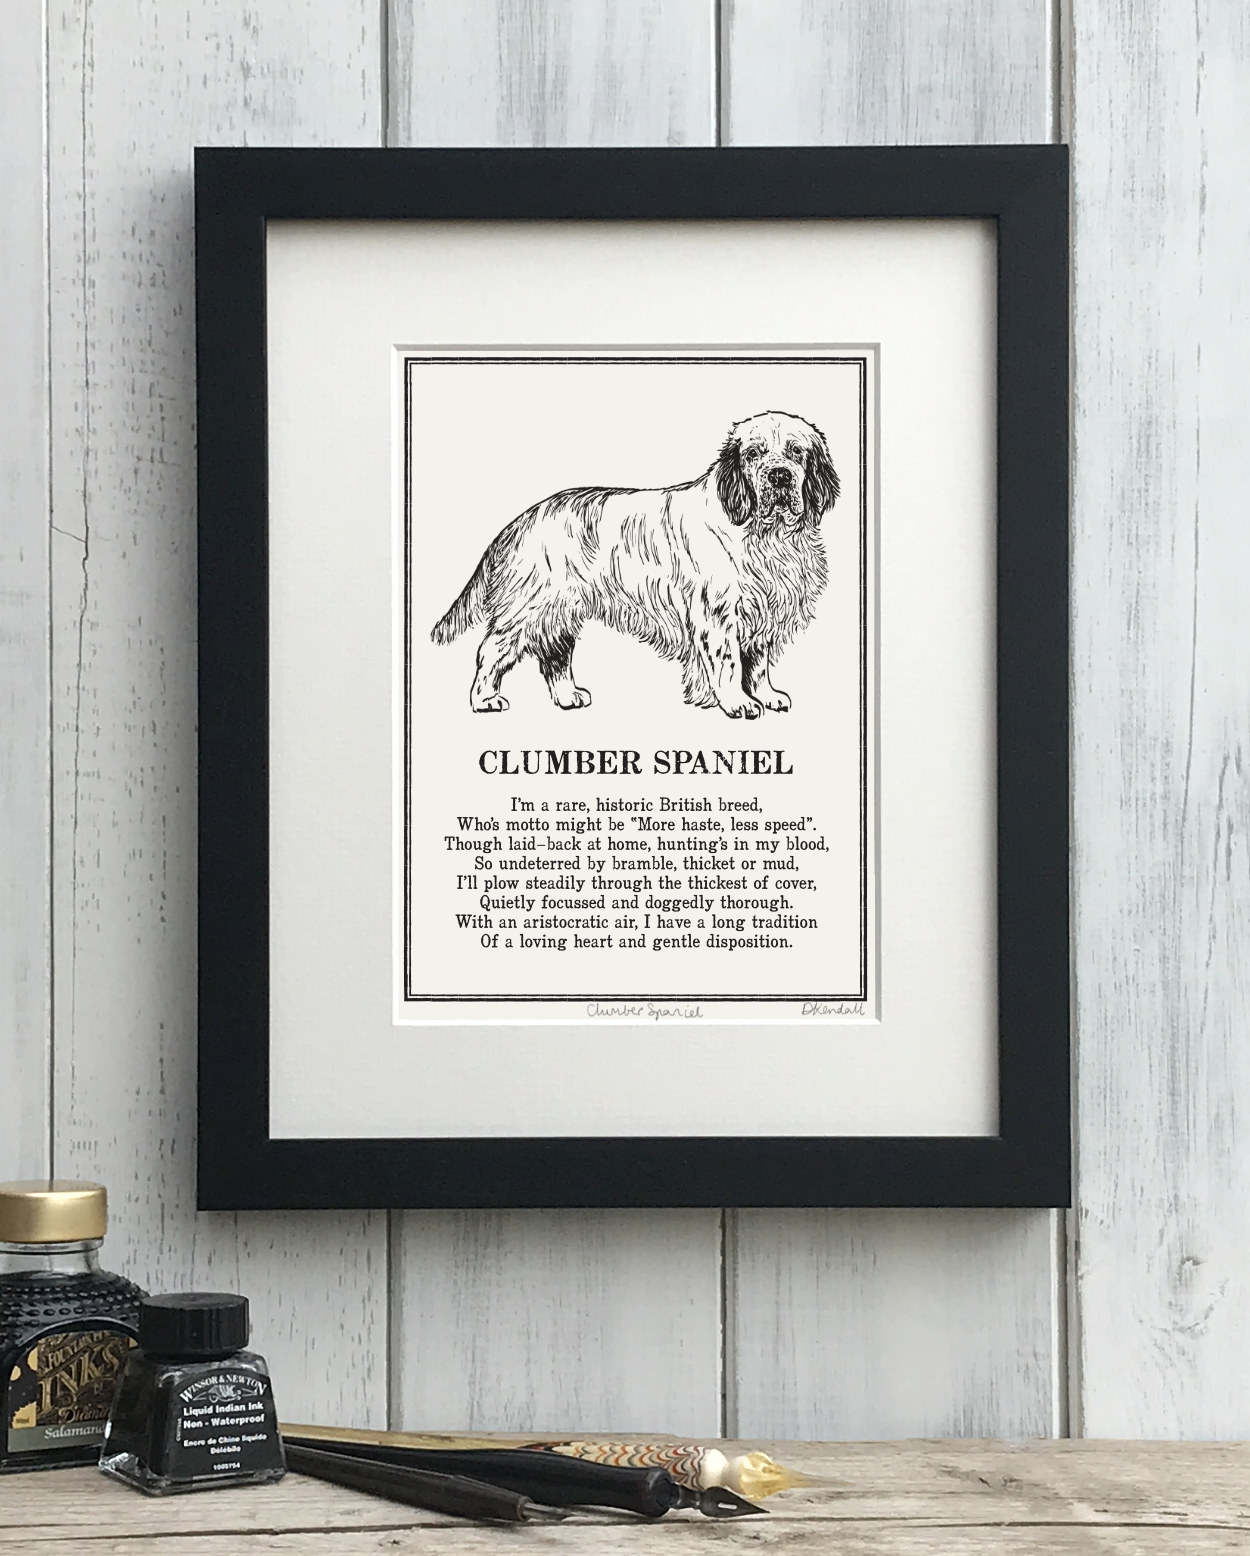 Clumber Spaniel print illustrated poem by The Enlightened Hound